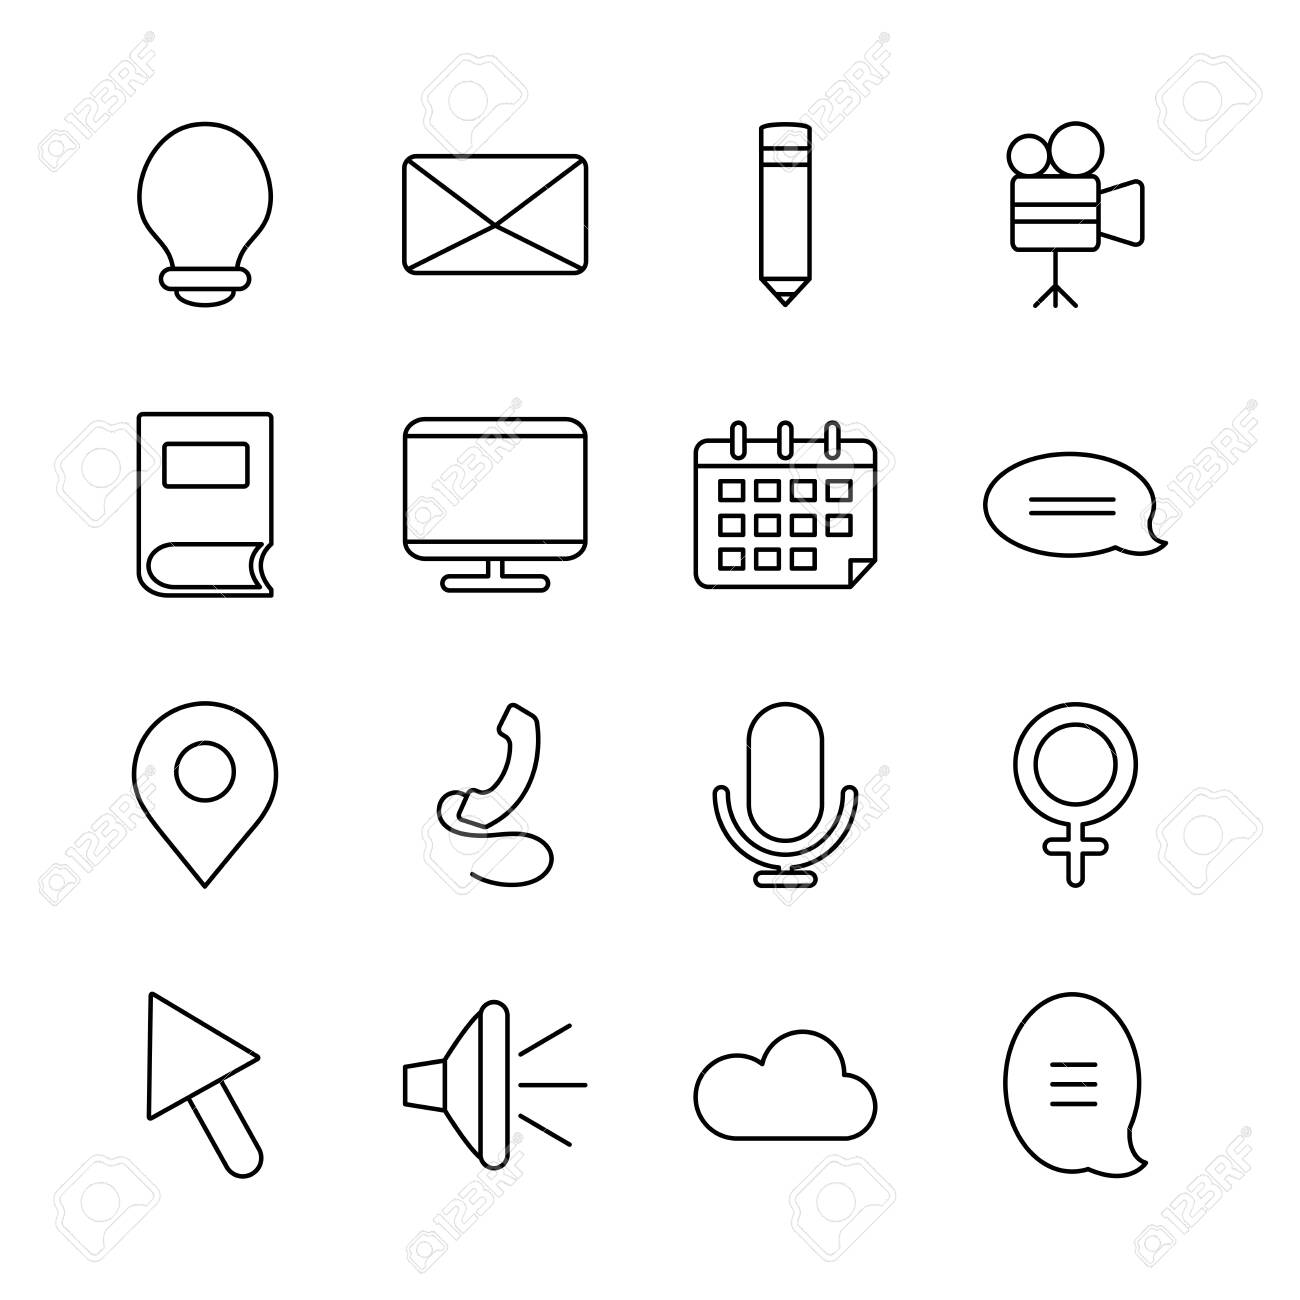 computer and web icons set over white background, line style, vector illustration - 149519817